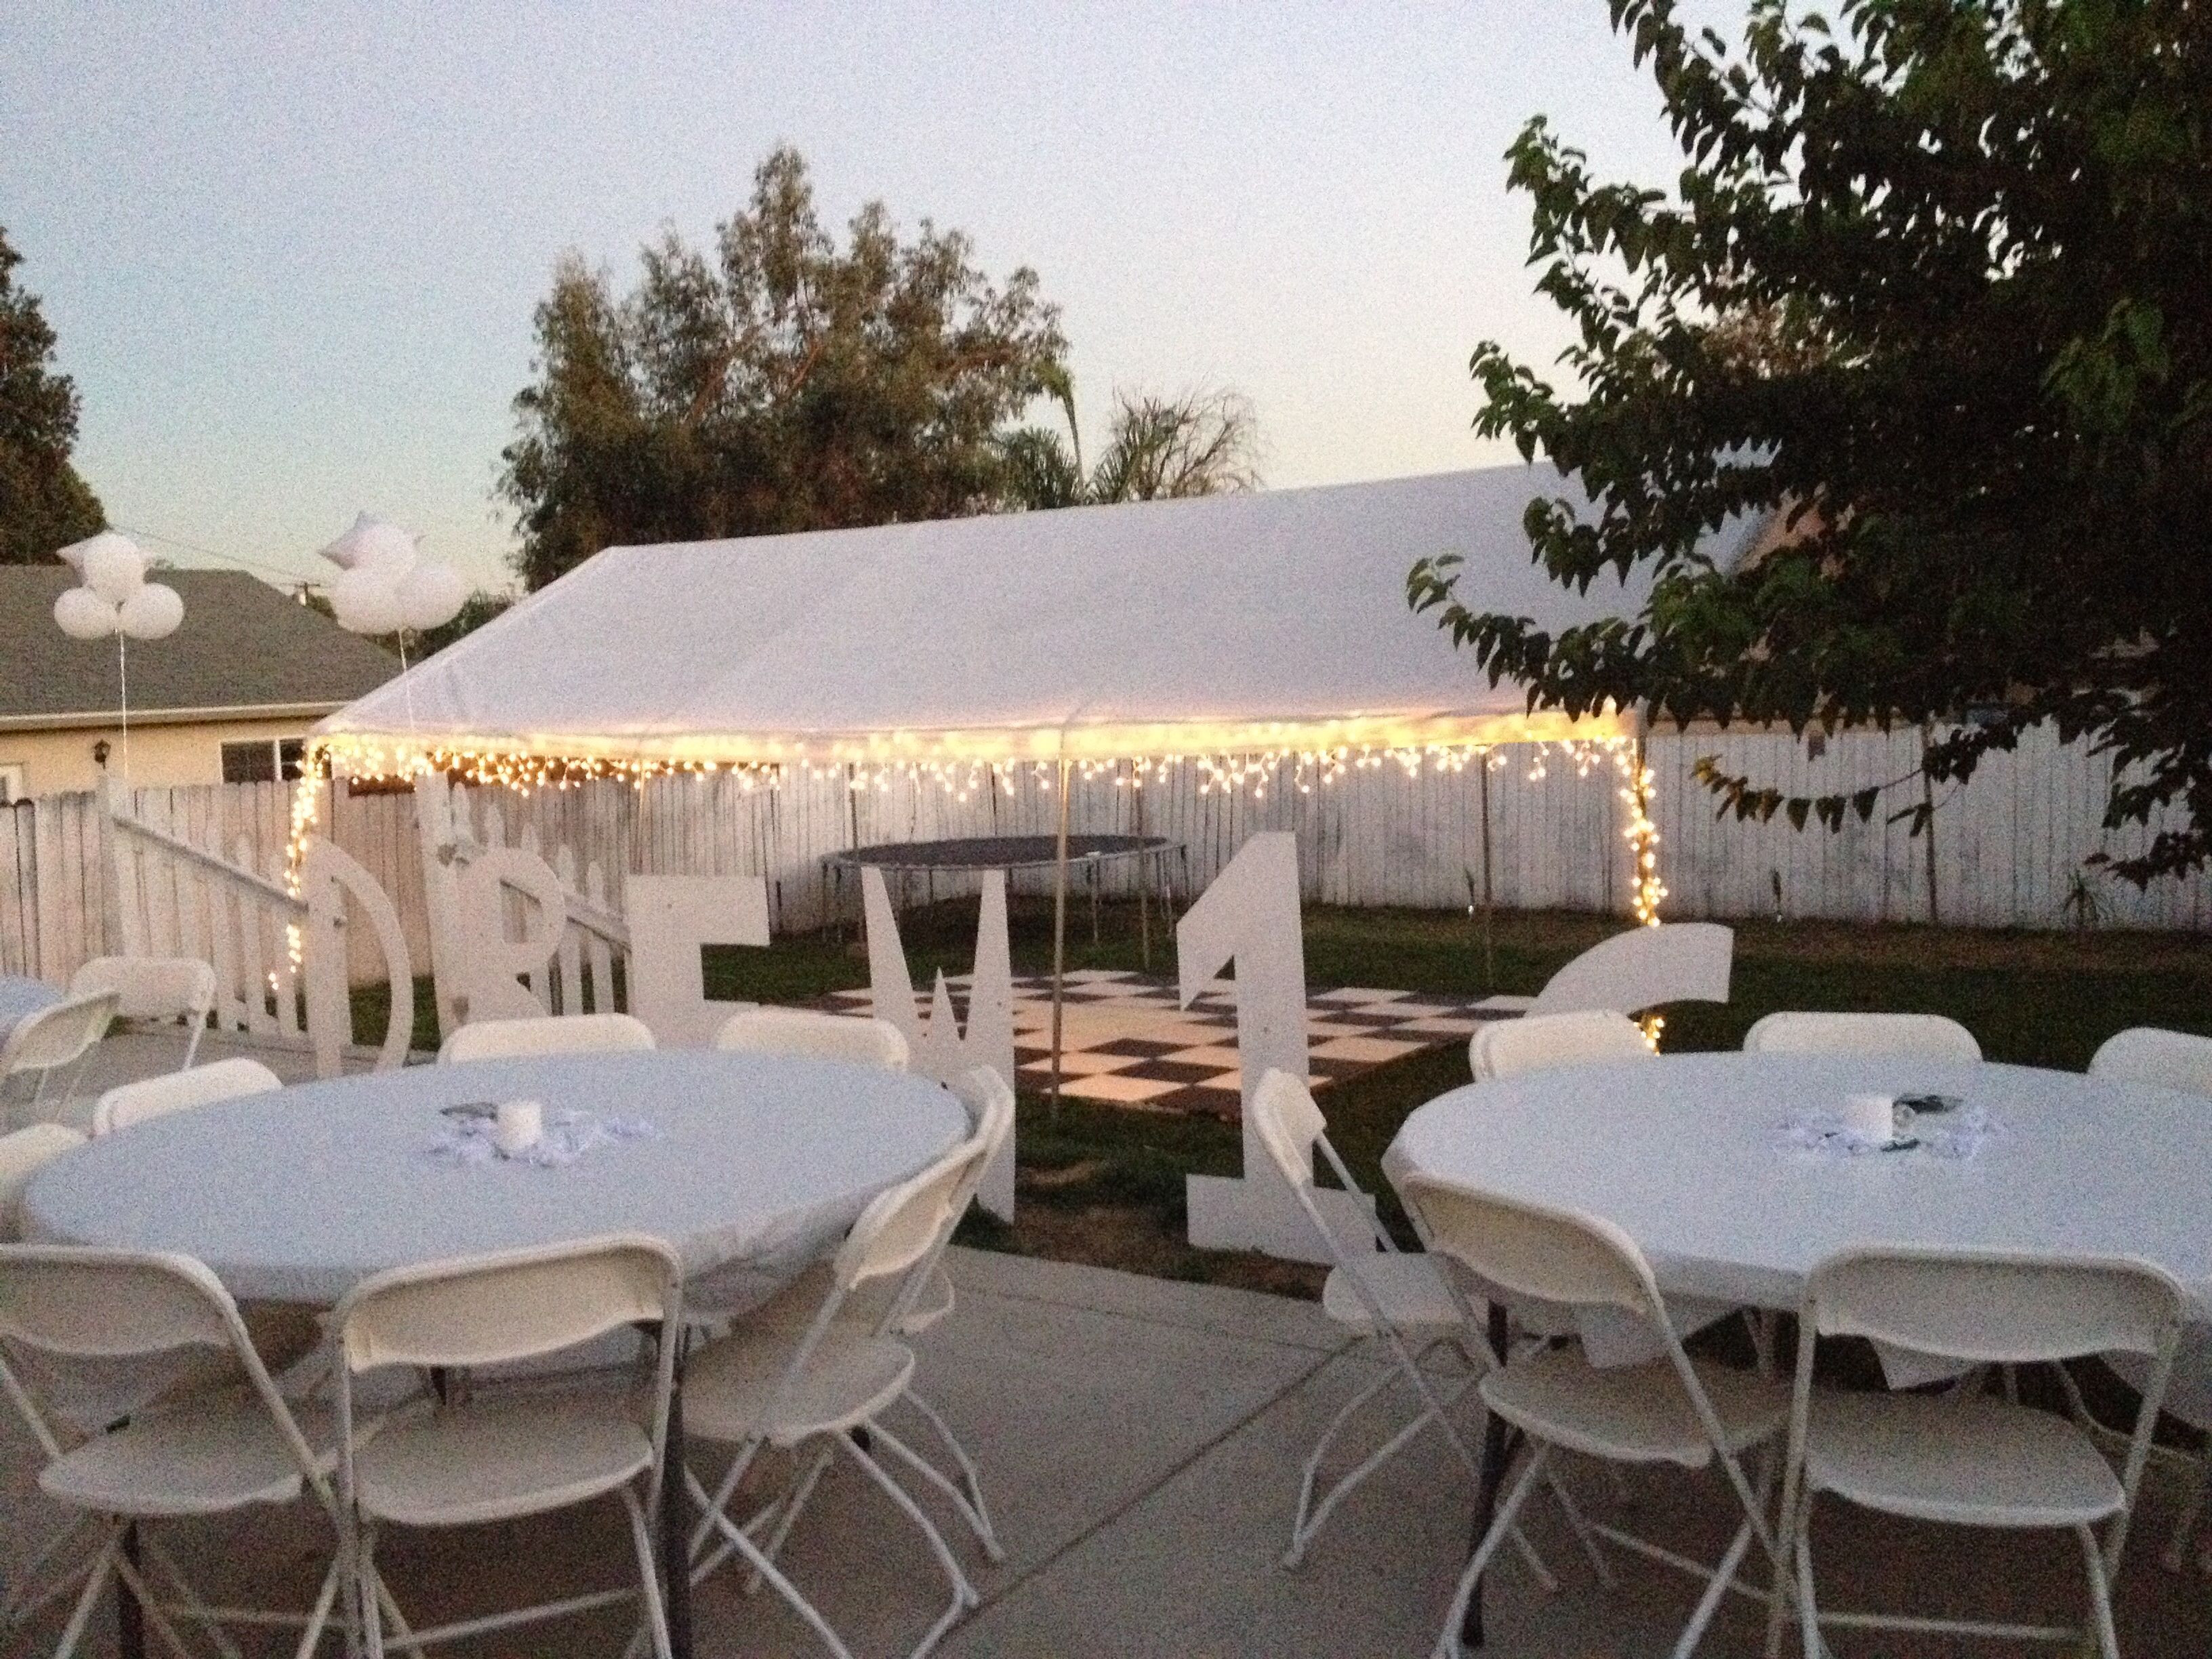 Backyard Birthday Party Ideas Sweet 16  All white party backyard set up